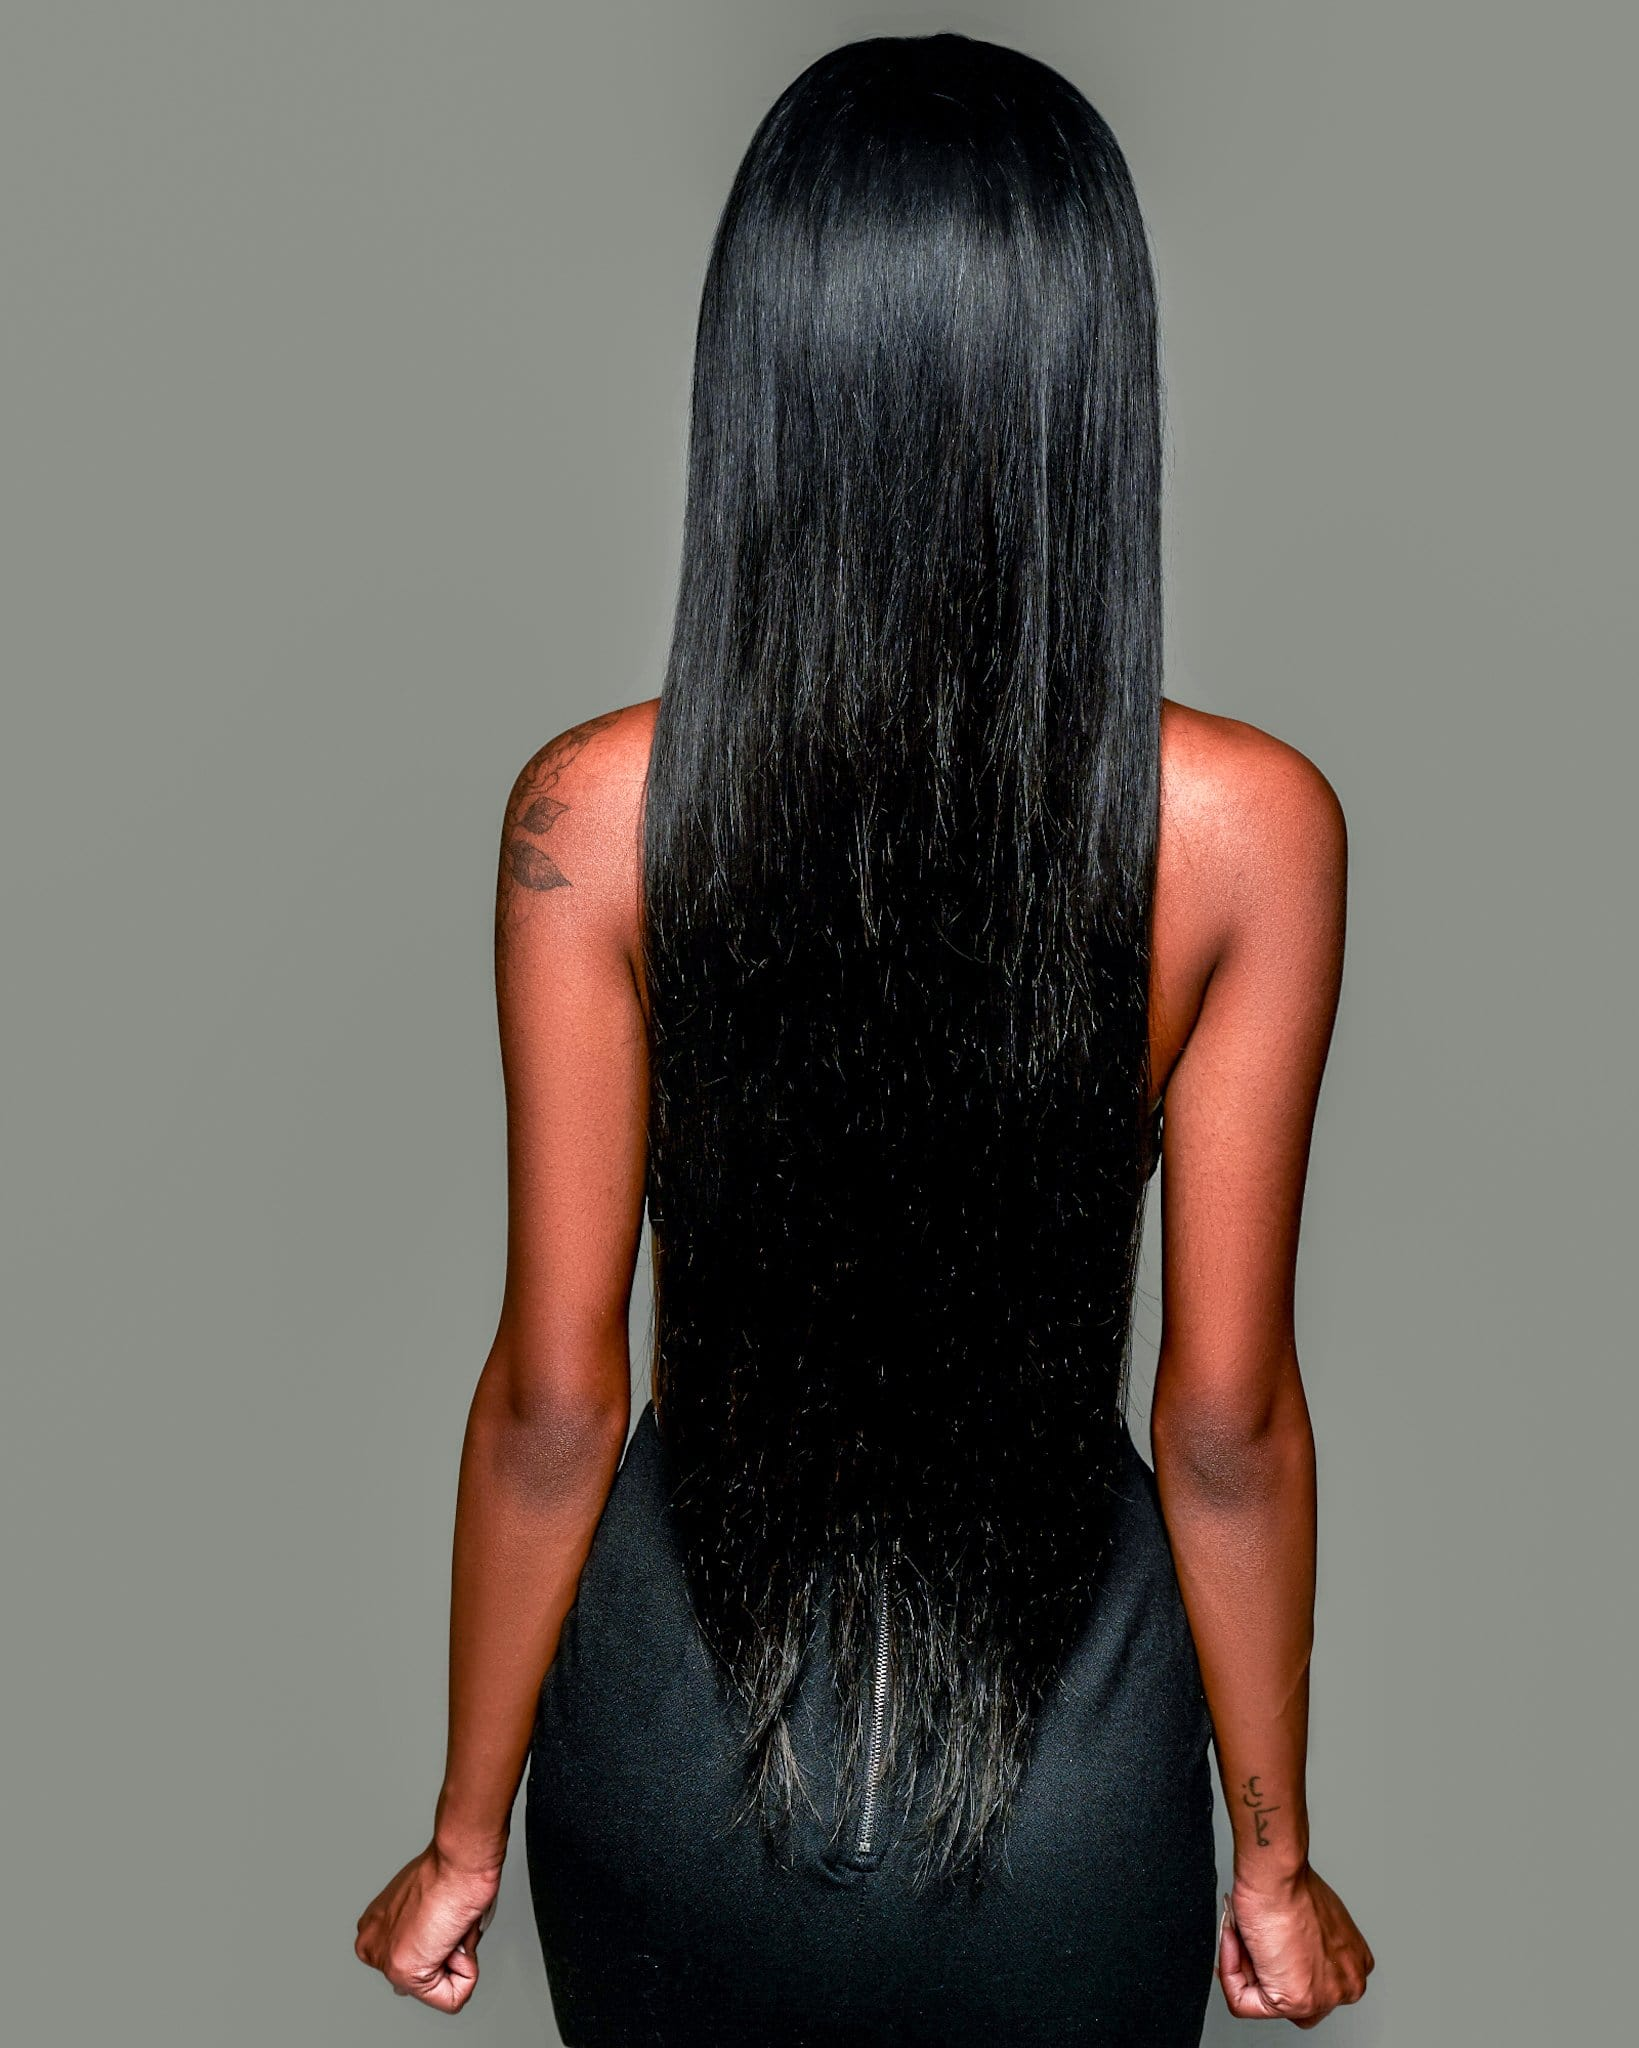 "'Soeurs' Human Hair Wig | 28"" Long Black Lace Wig 